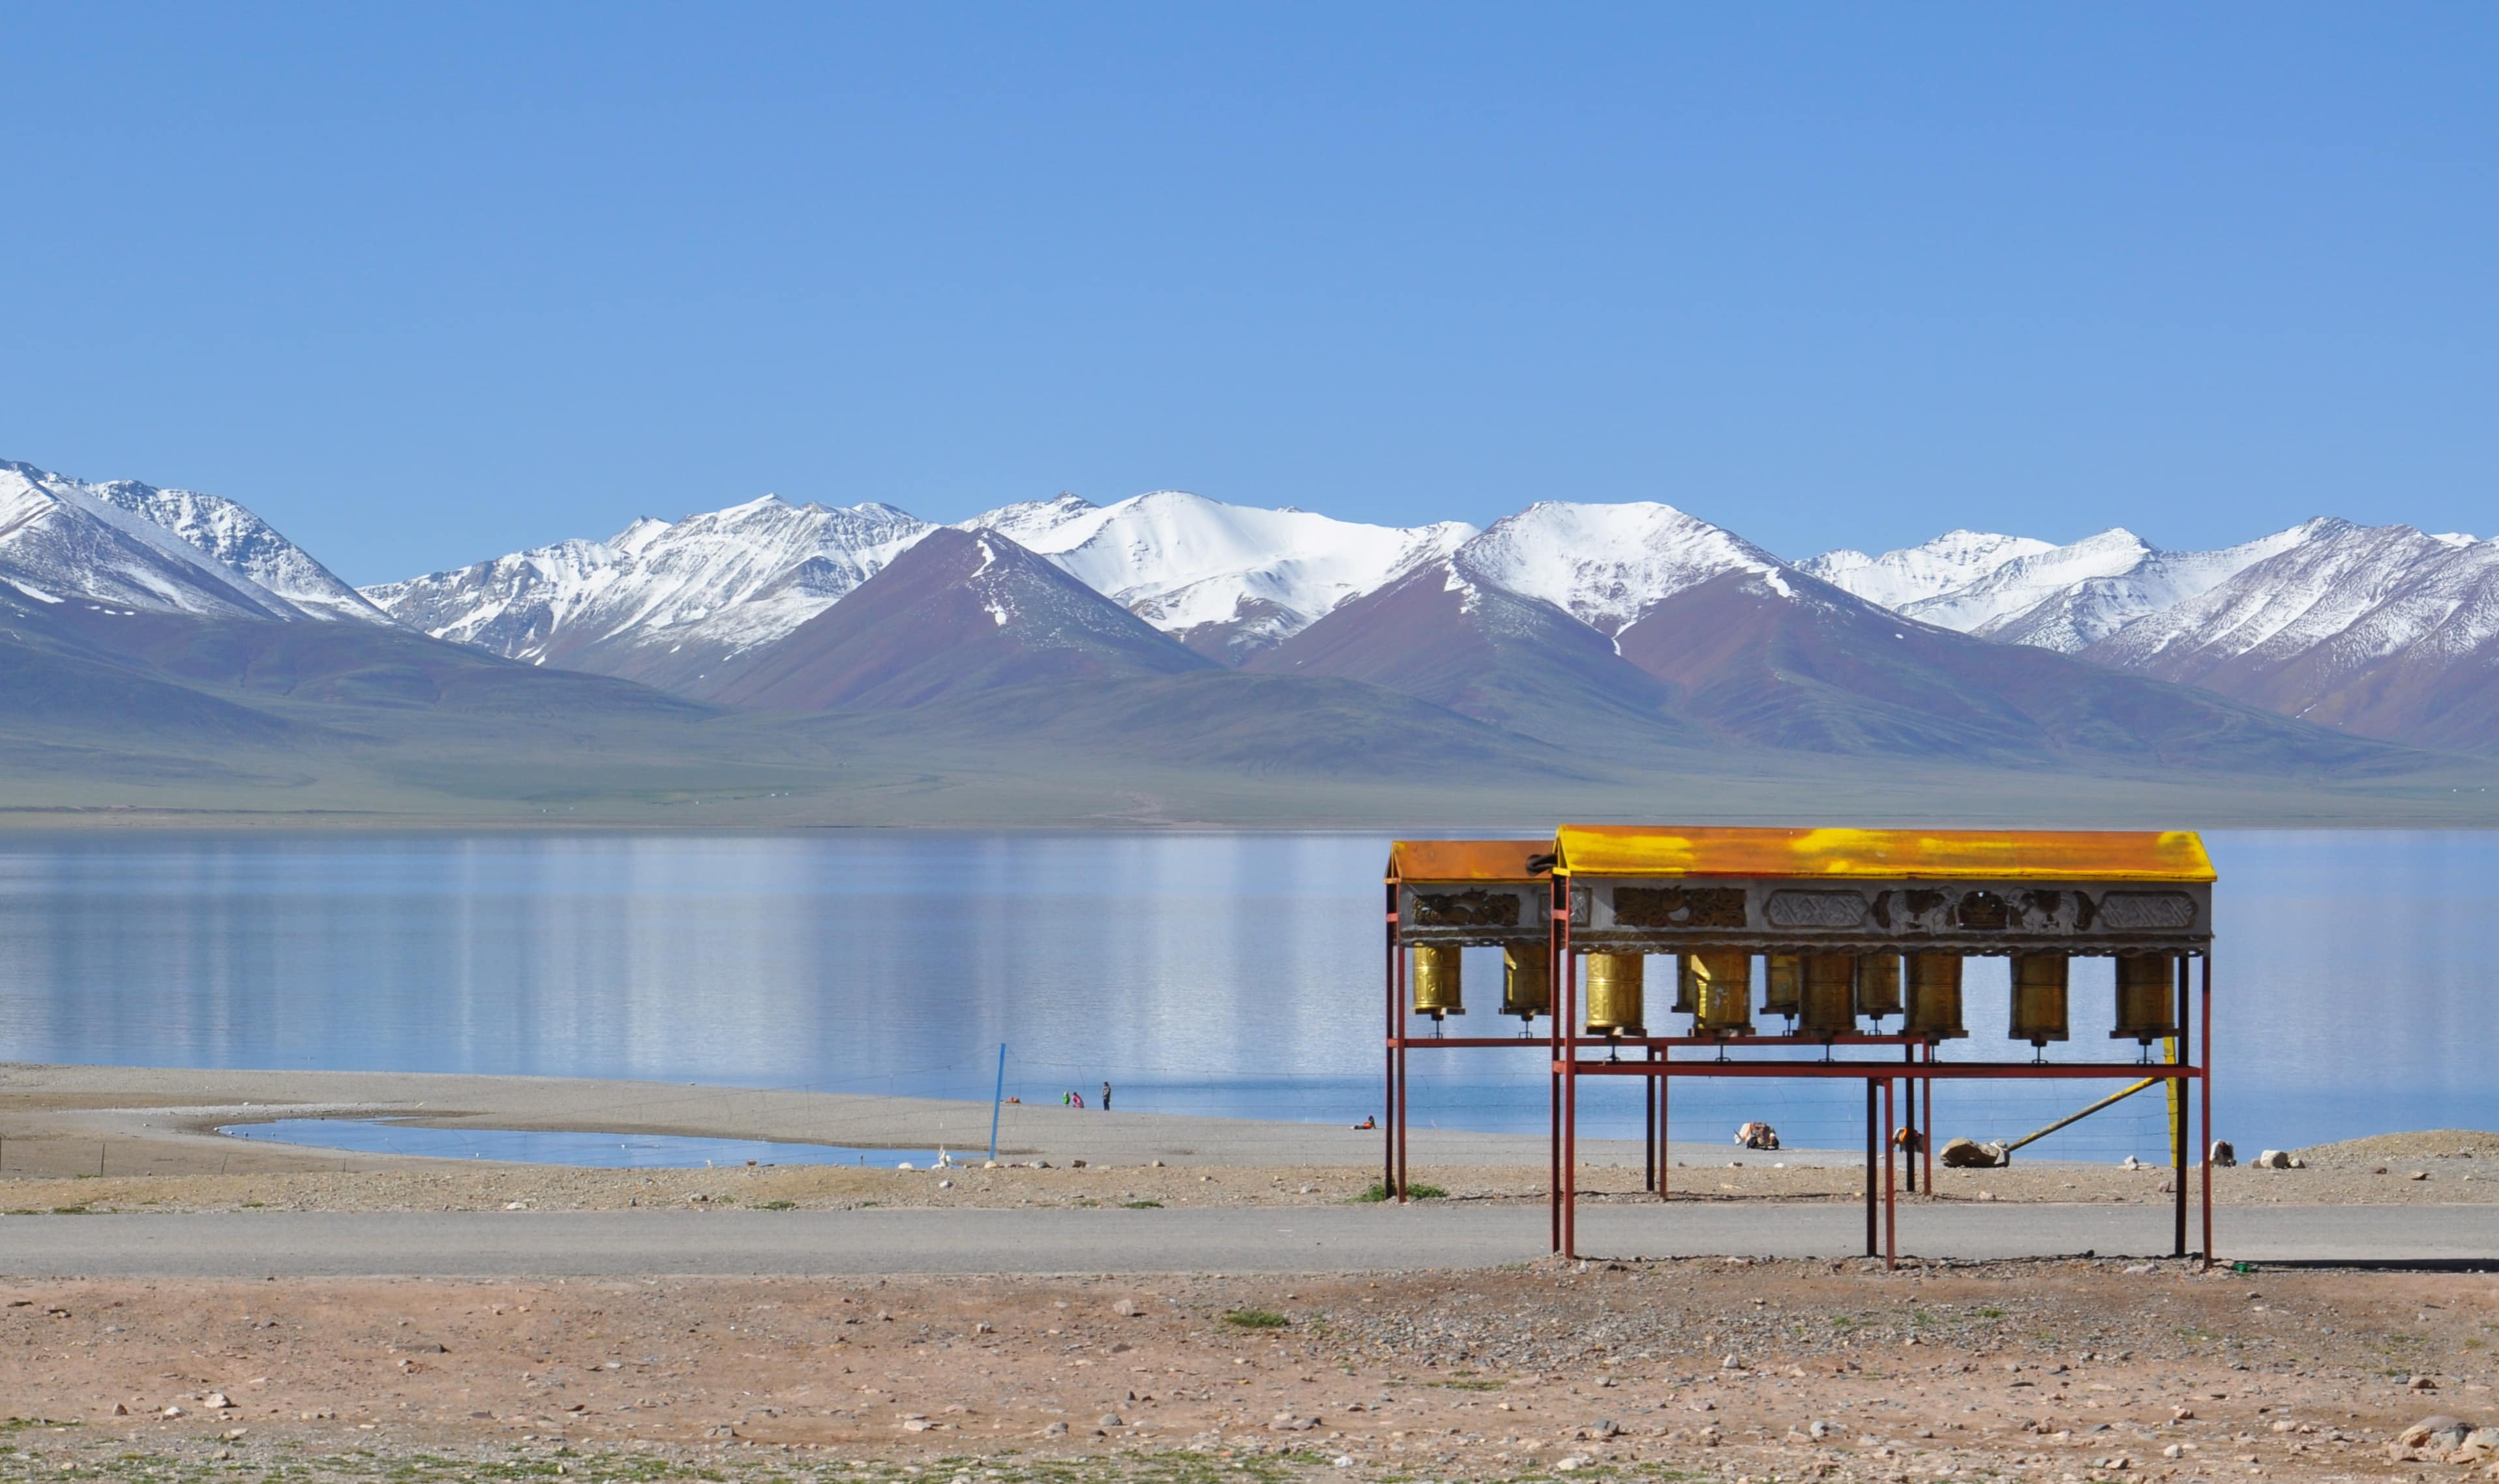 Prayer wheels by the Namtso lake in Tibet